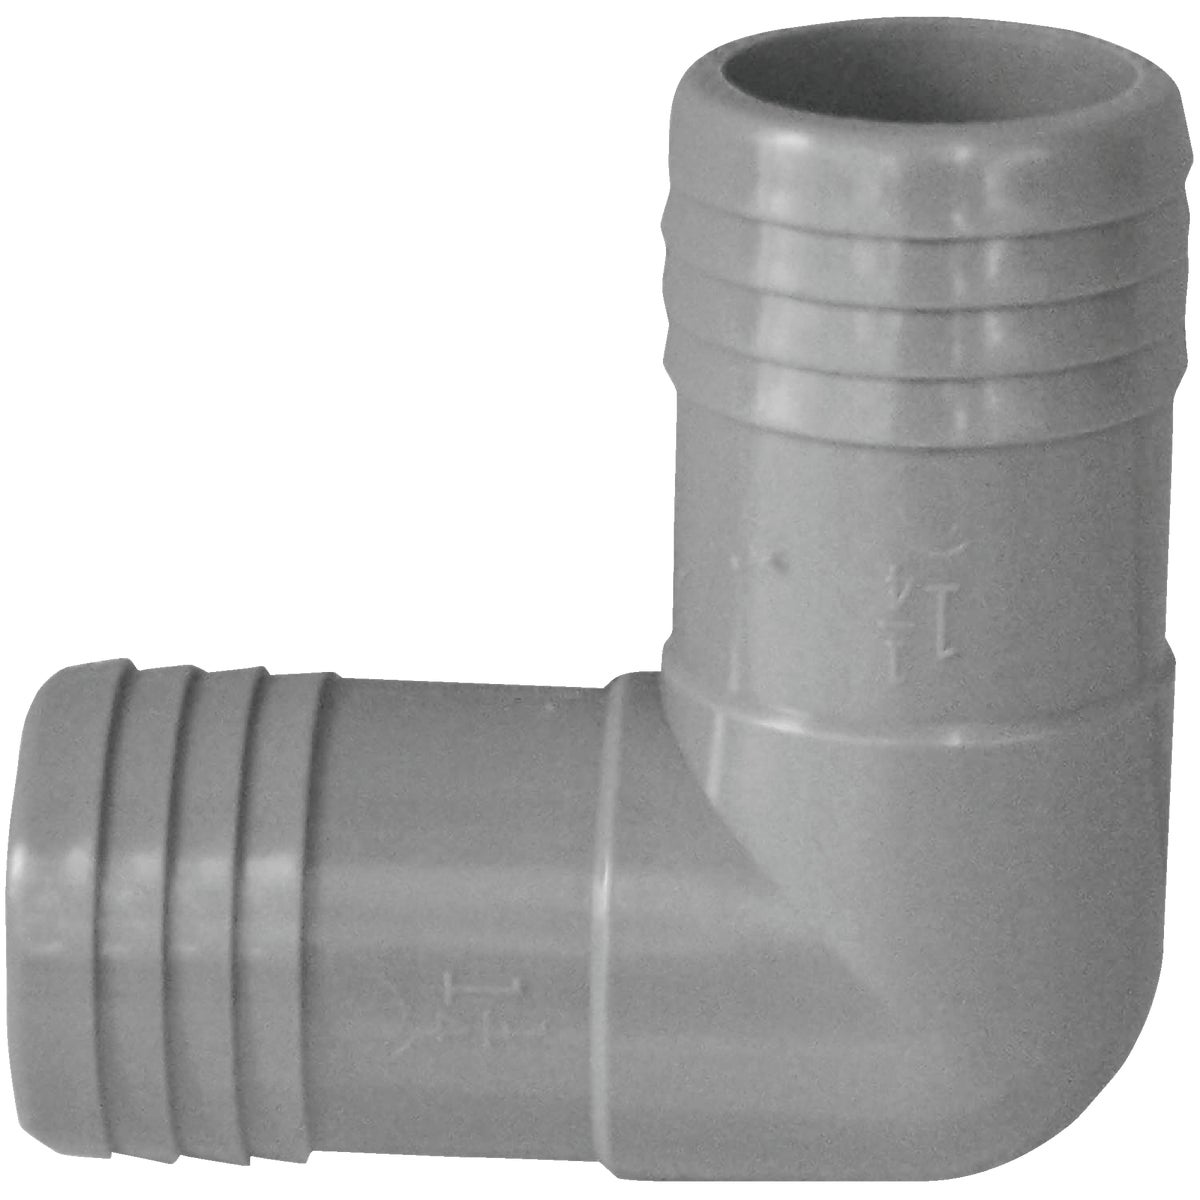 "1-1/4"" POLY INS ELBOW - 350714 by Genova Inc"